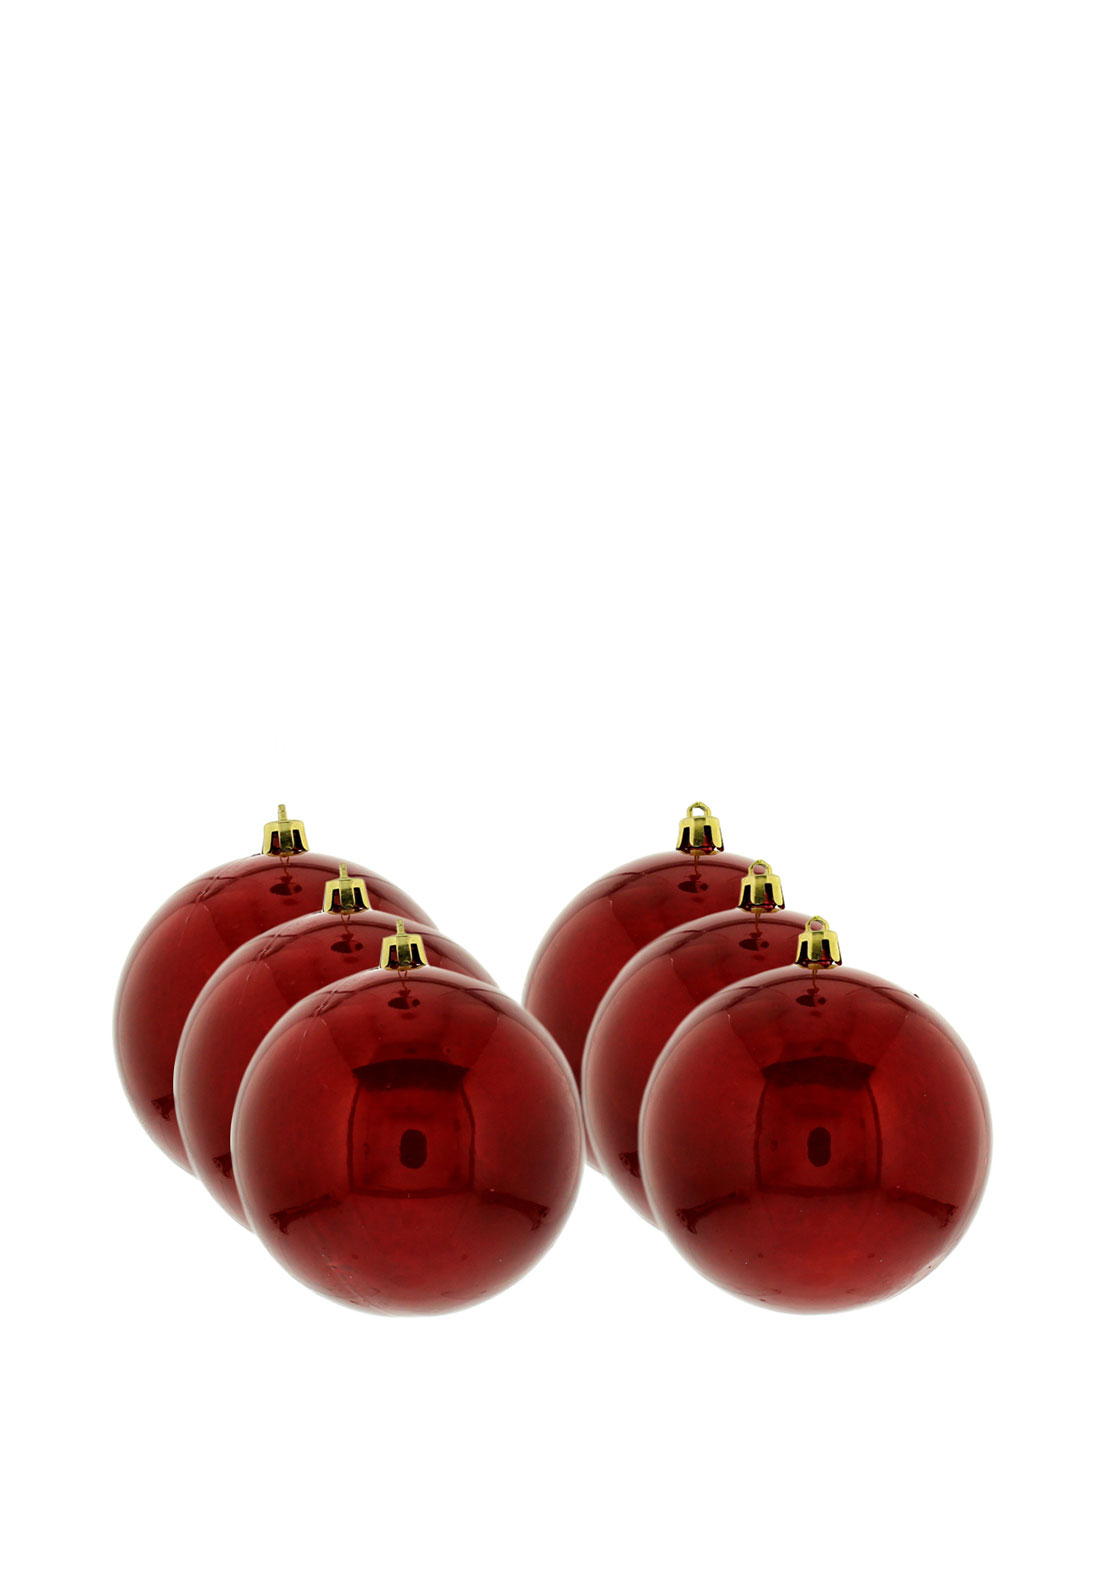 Festive Pack of 6 Medium Baubles, Red